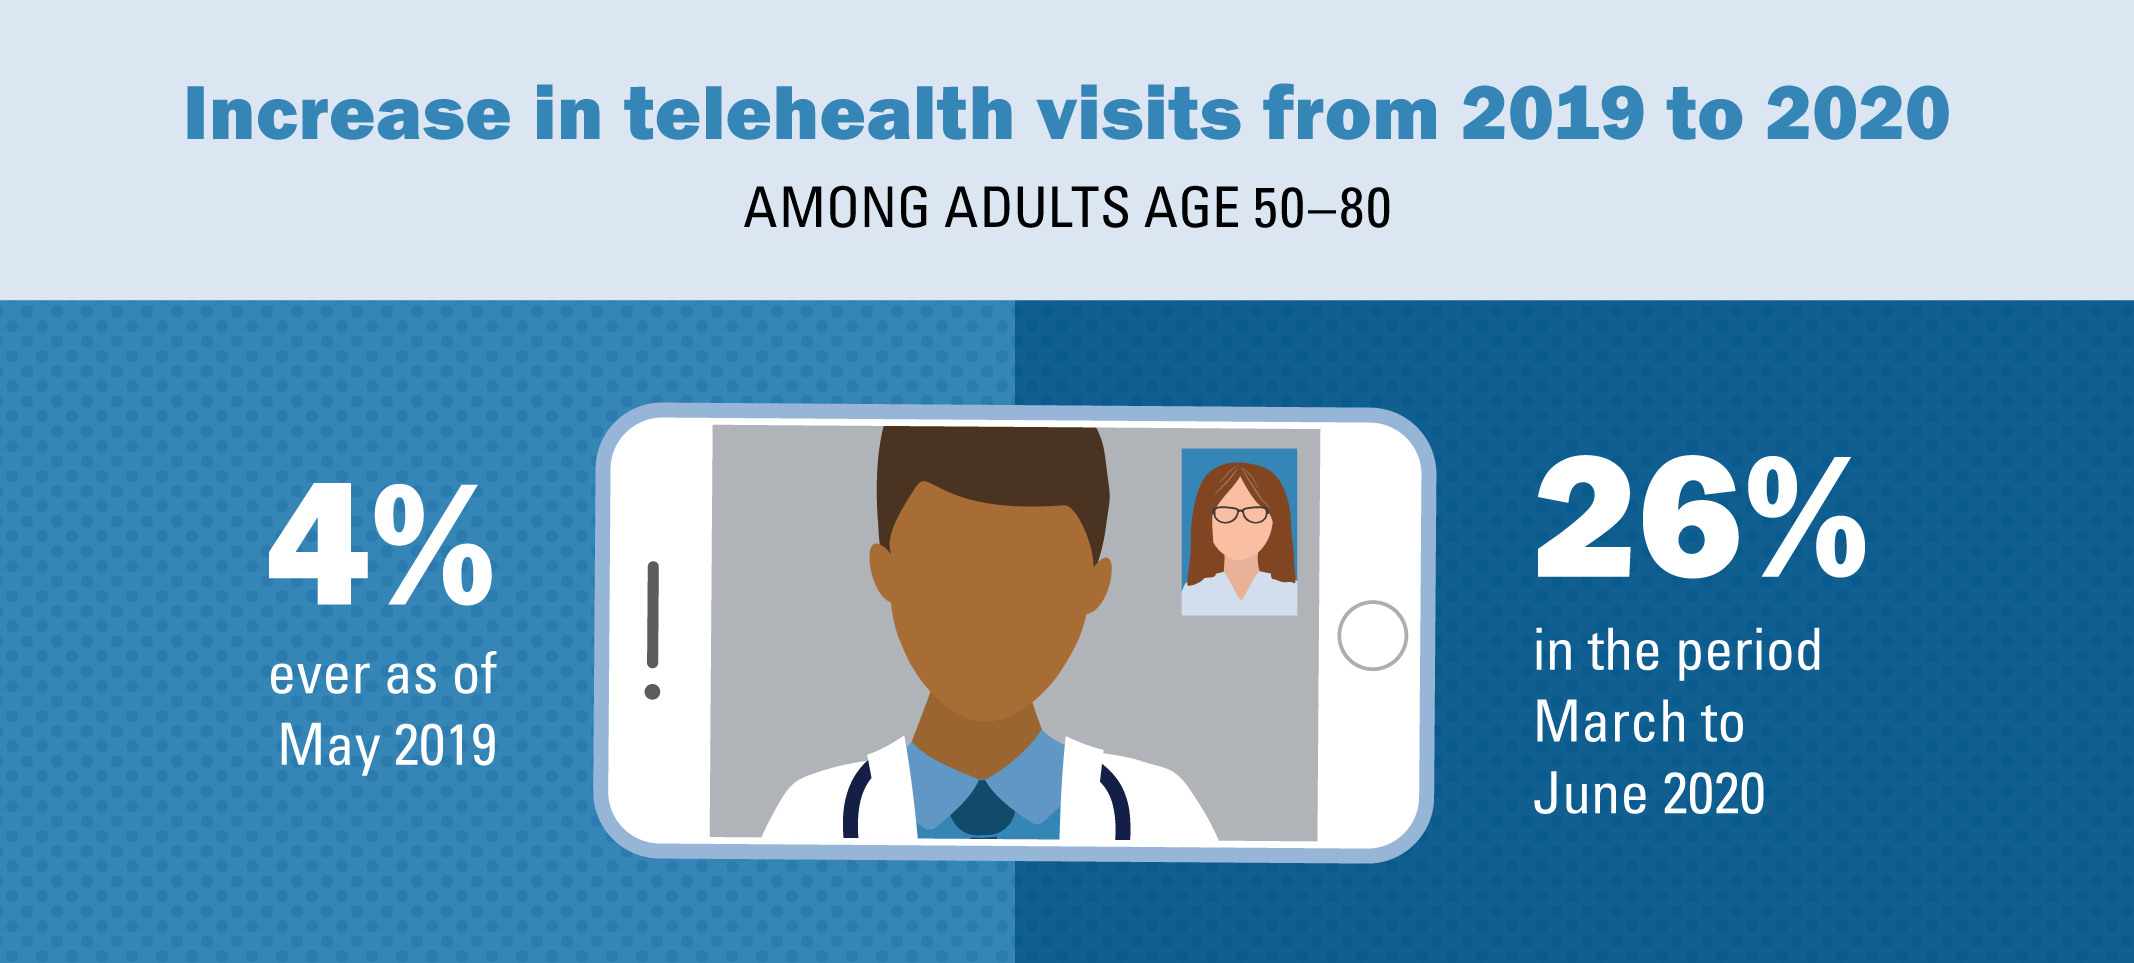 doctor on cell phone video; increase in telehealth visits from 2019 to 2020 among adults age 50-80 - 4% ever as of May 2019, 26% in the period of March to June 2020